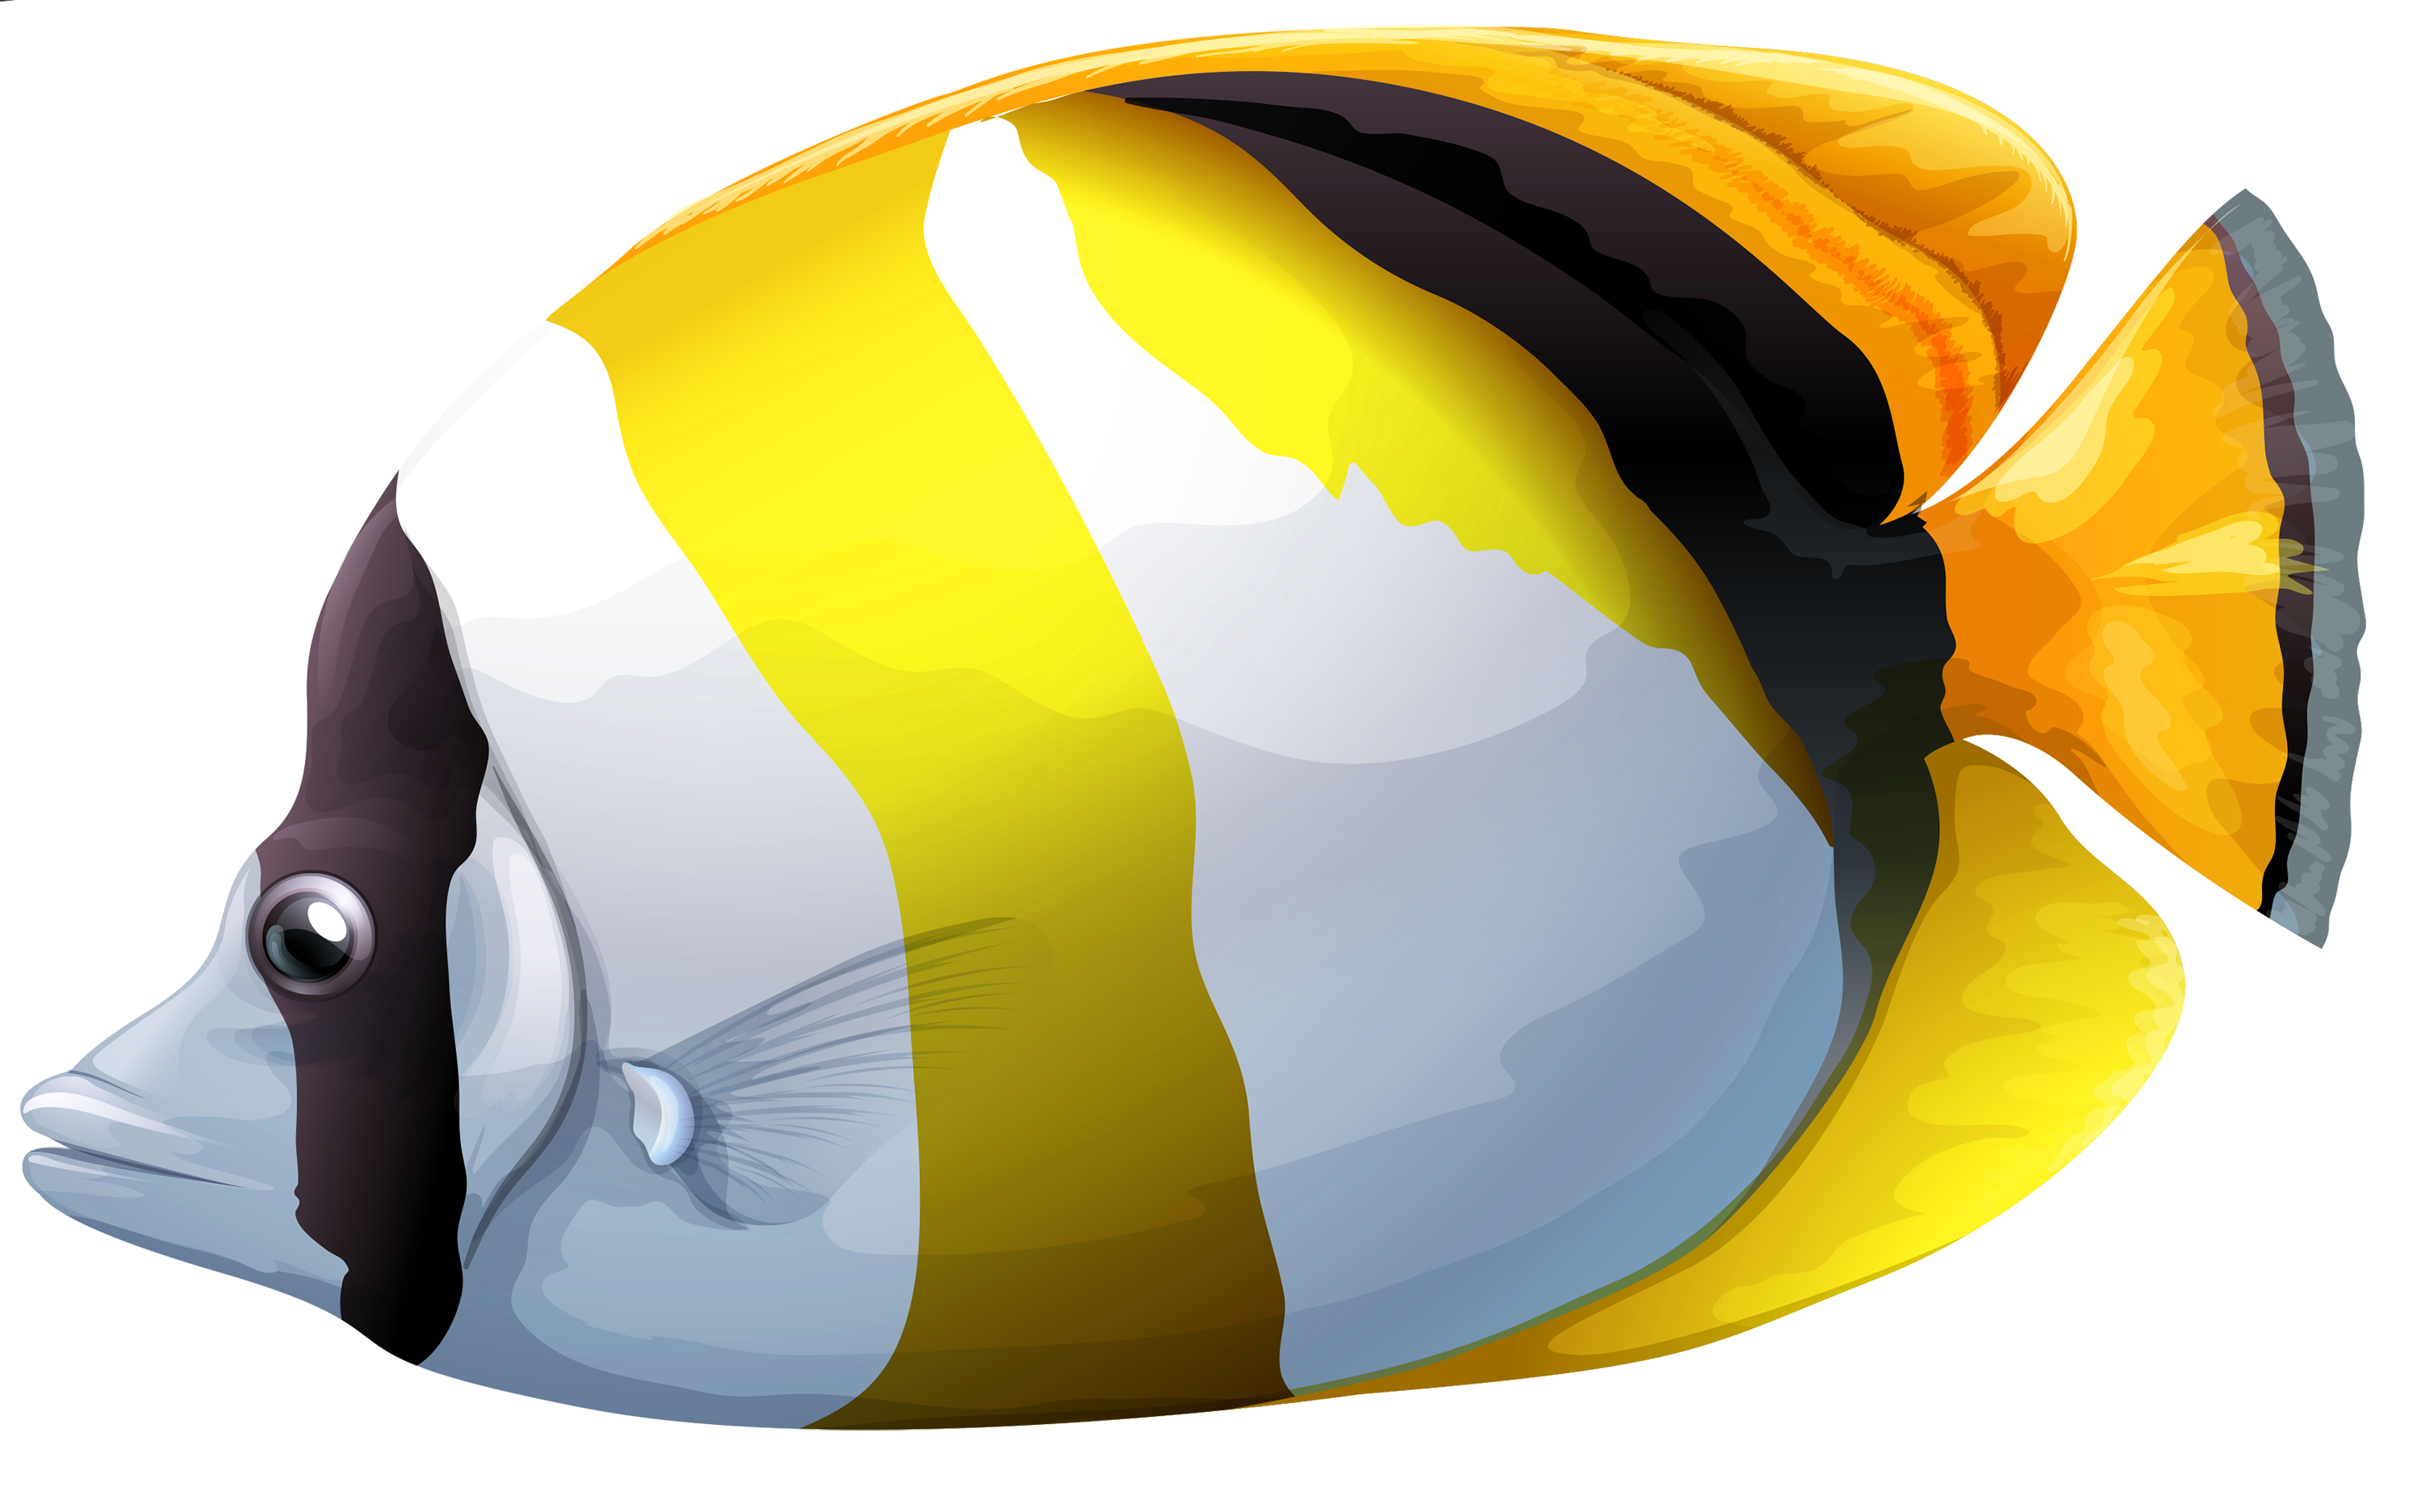 Fishing clipart transparent background. Chaetodon butterfly fish png